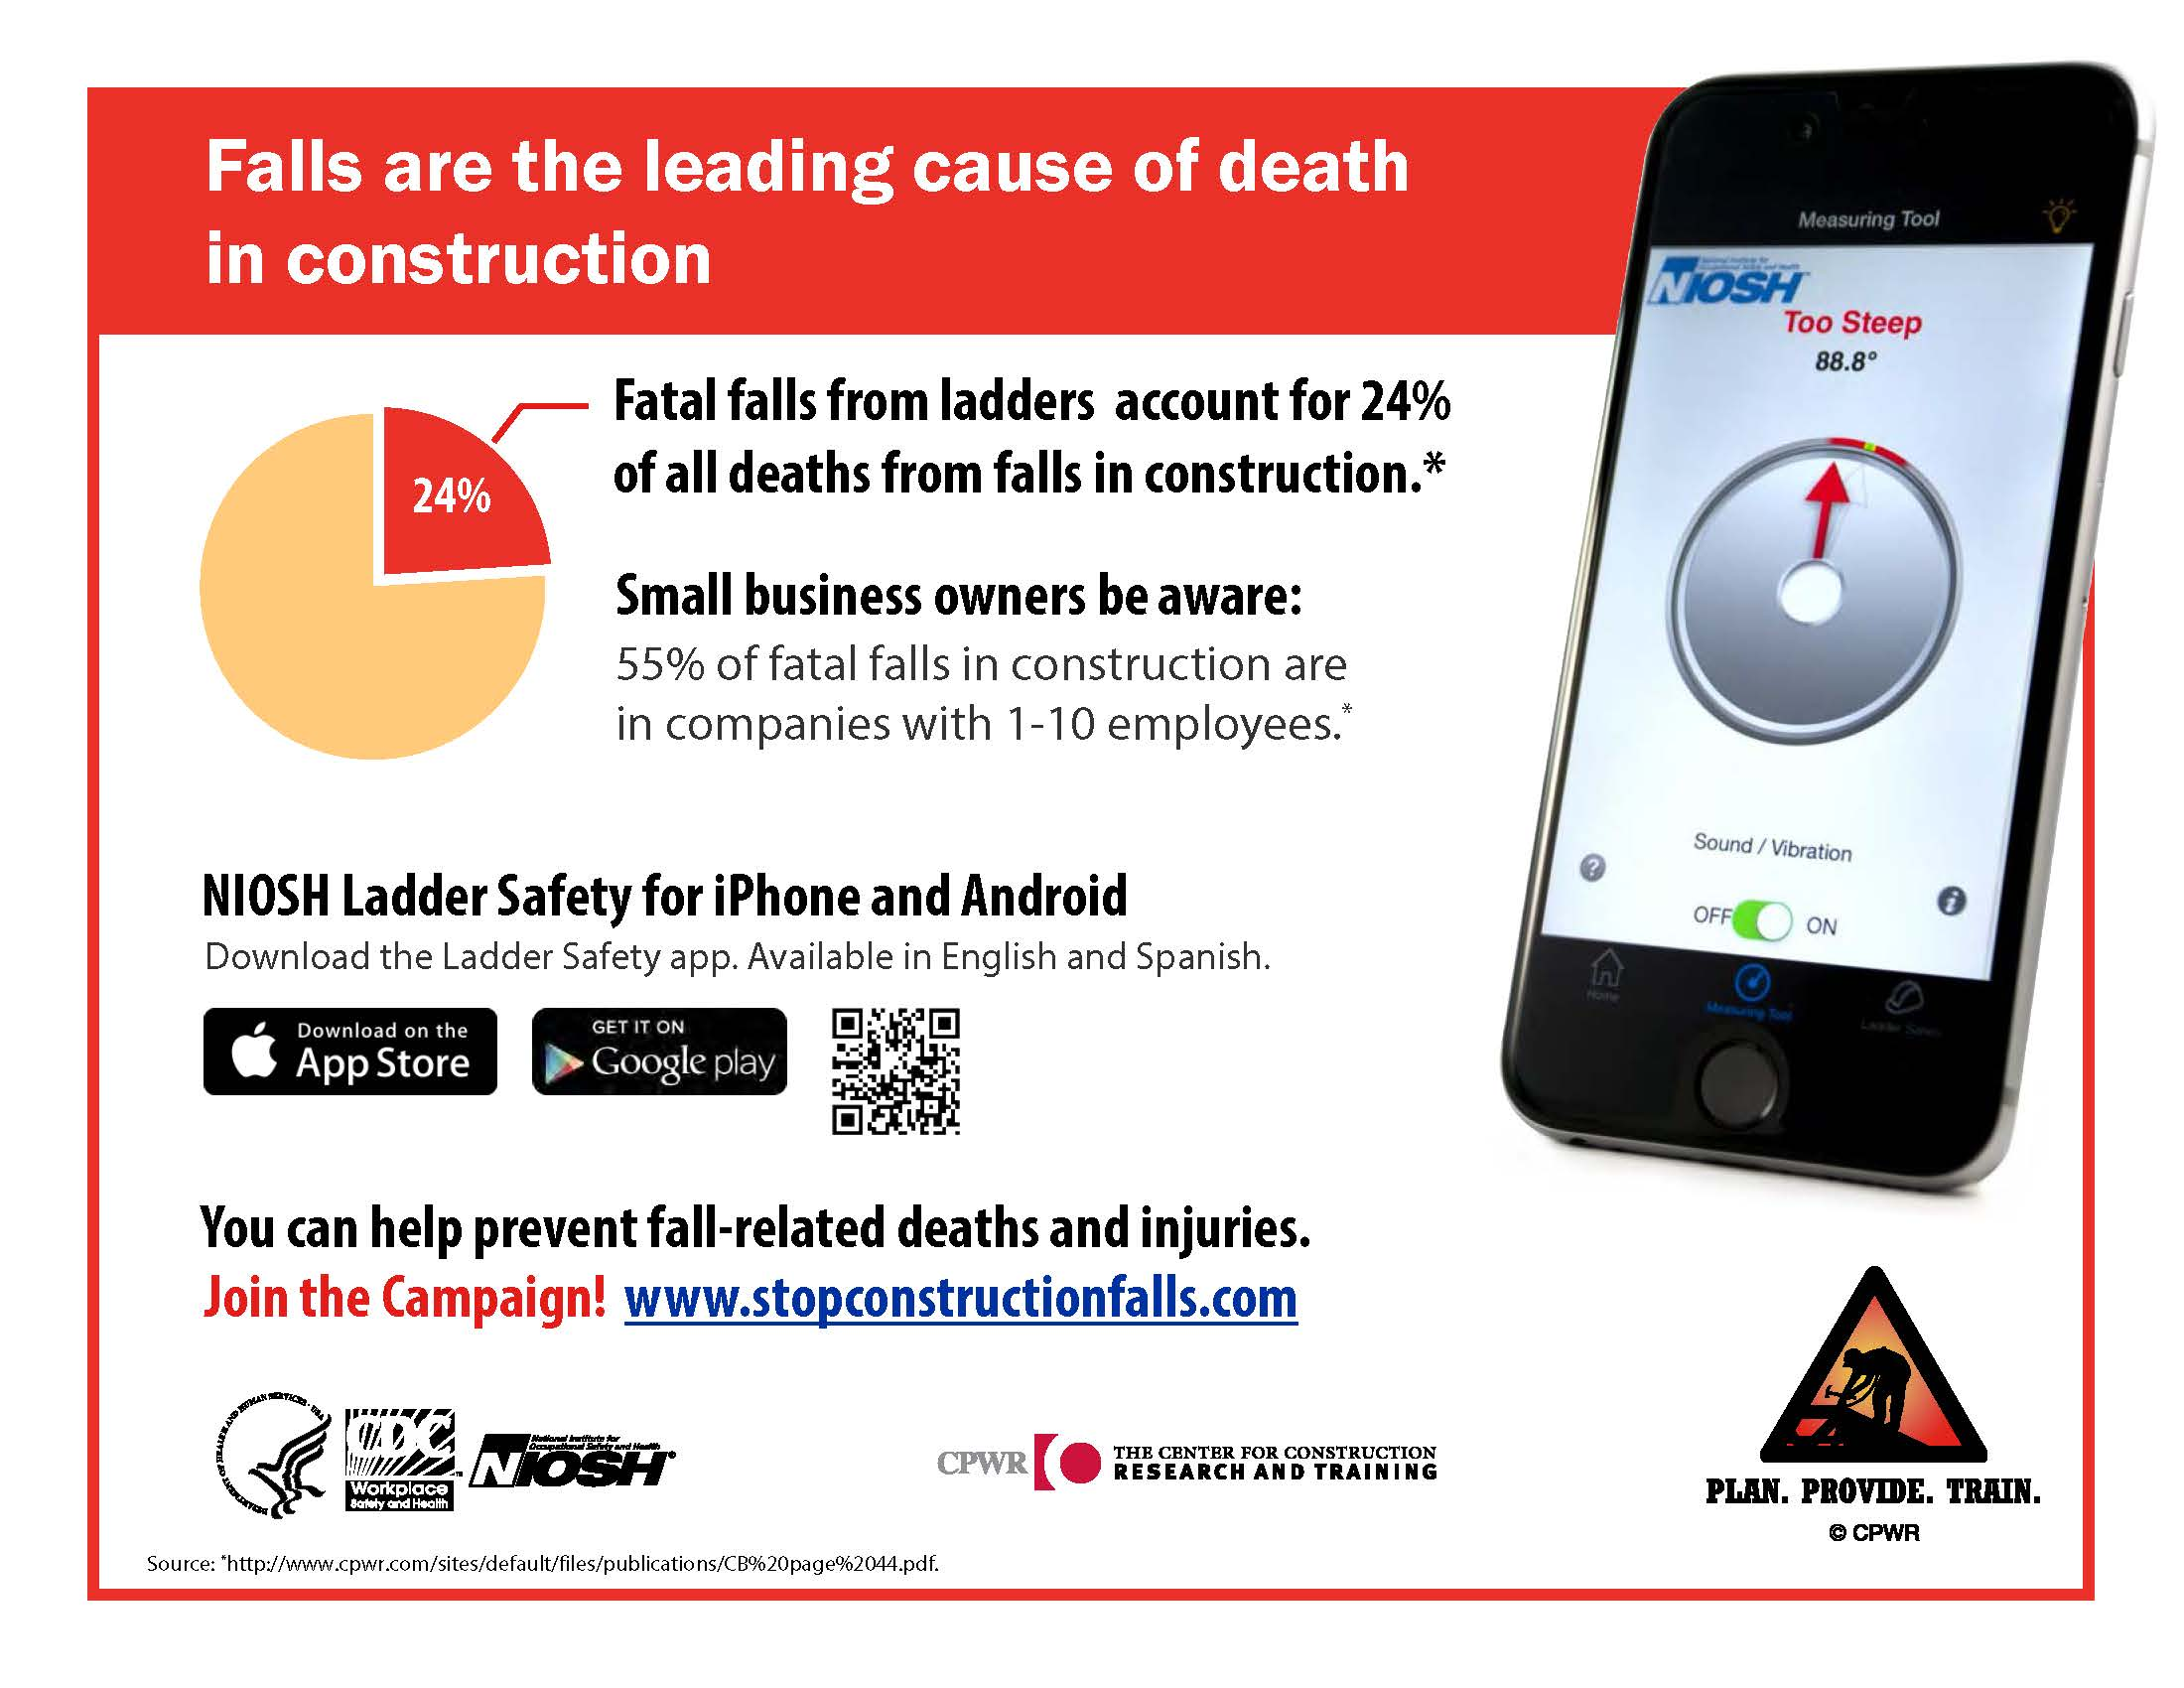 Falls are the leading cause of death in the construction industry